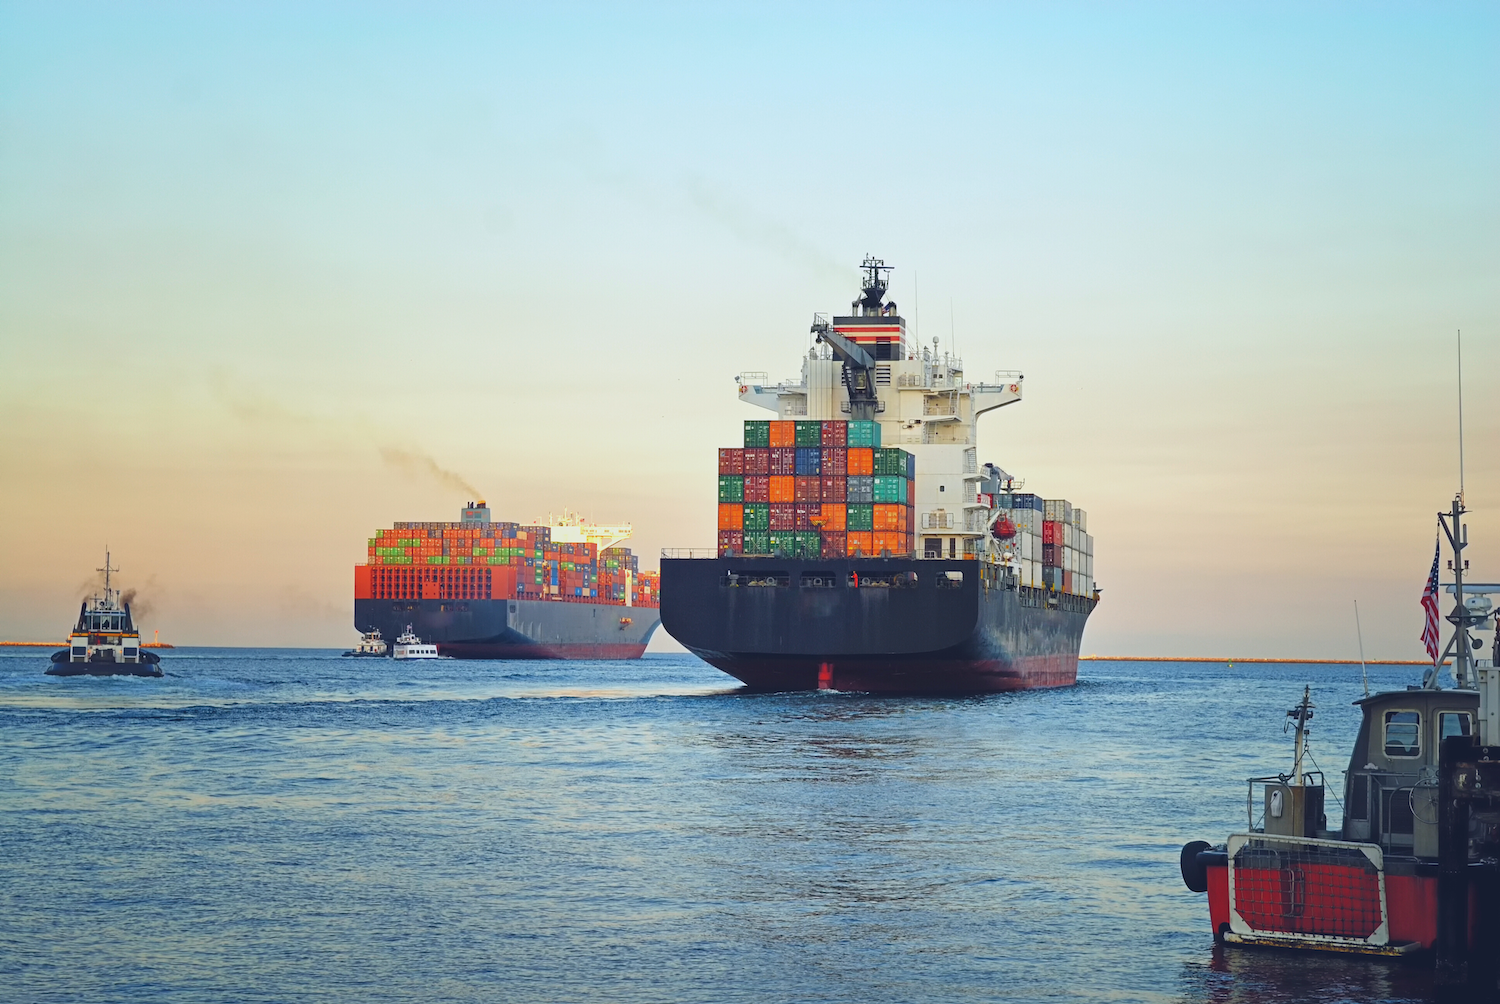 """Prolonged transit times and climbing rates have many beginning to wonder if on-time, in full shipments are a relic of the pre-COVID days. A look at this """"never normal"""" era including pallet shortages and a soon-to-be wider Suez Canal in this week's Friday Five!"""